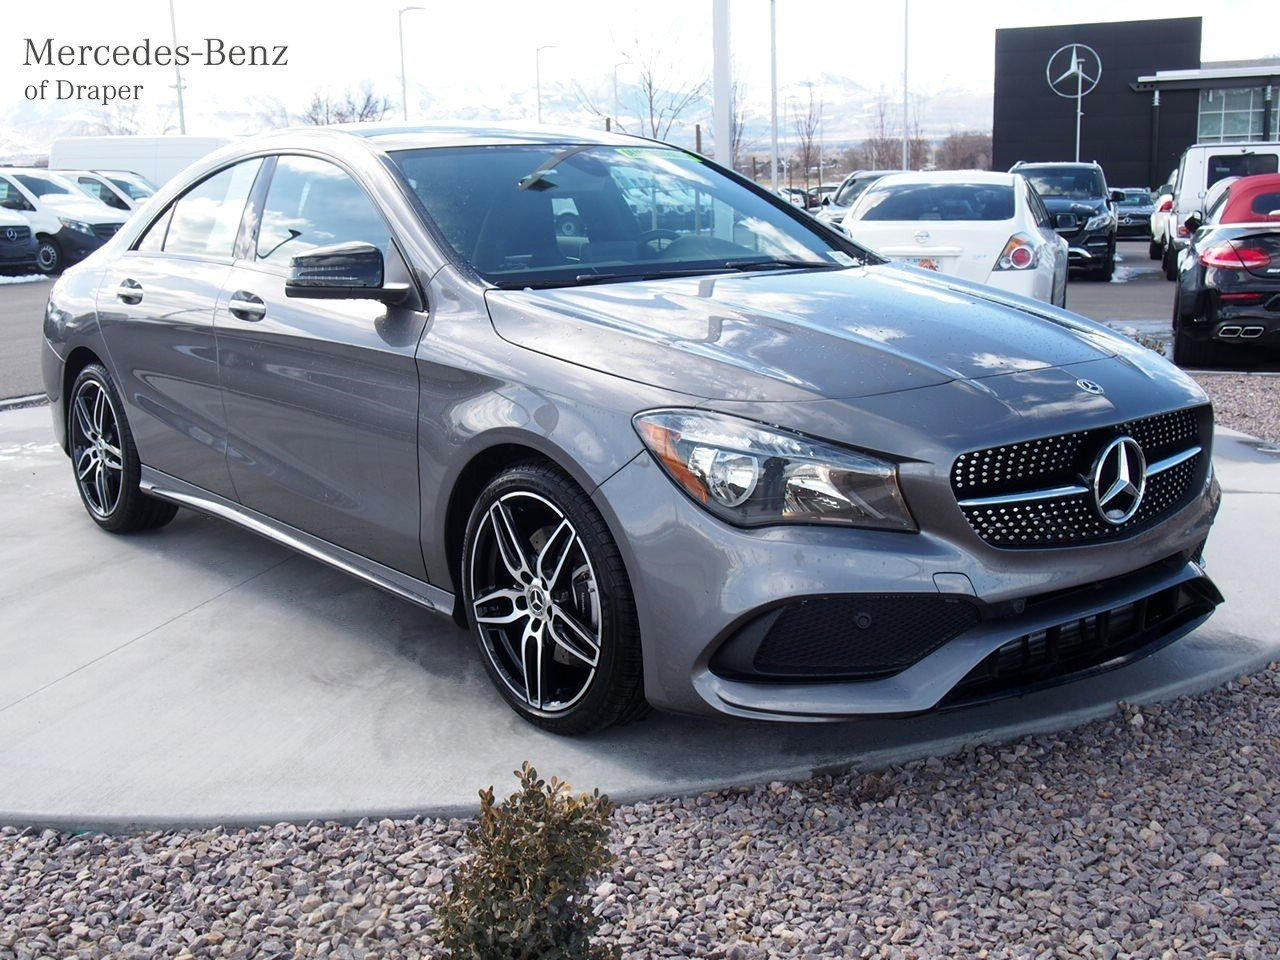 Pre-Owned 2018 Mercedes-Benz CLA 250 stk#JN535244 4MATIC